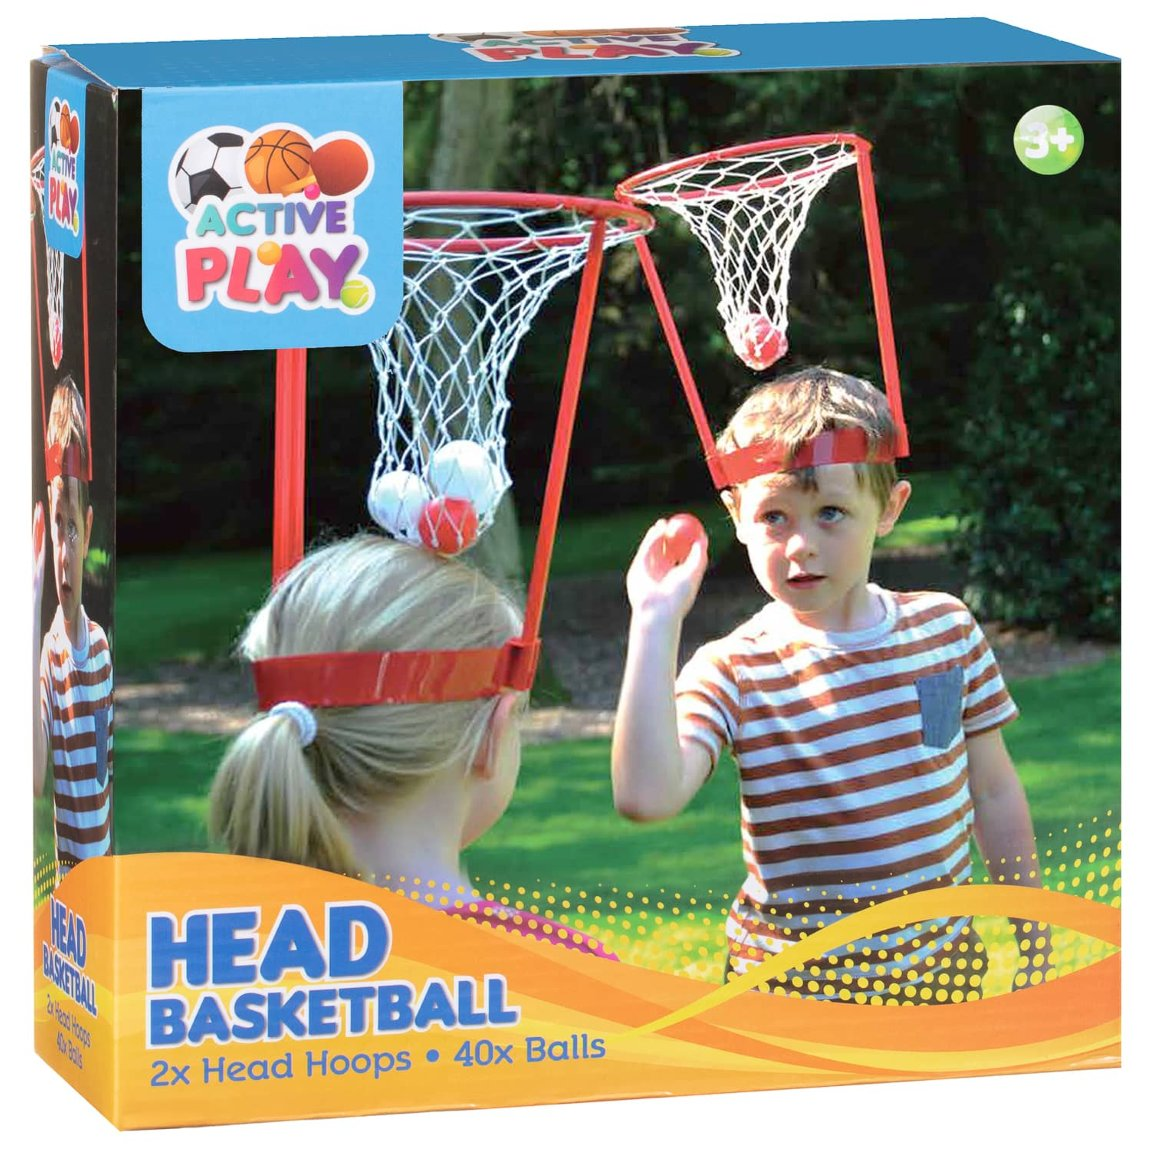 Head Basketball 2pk From B&M Toys